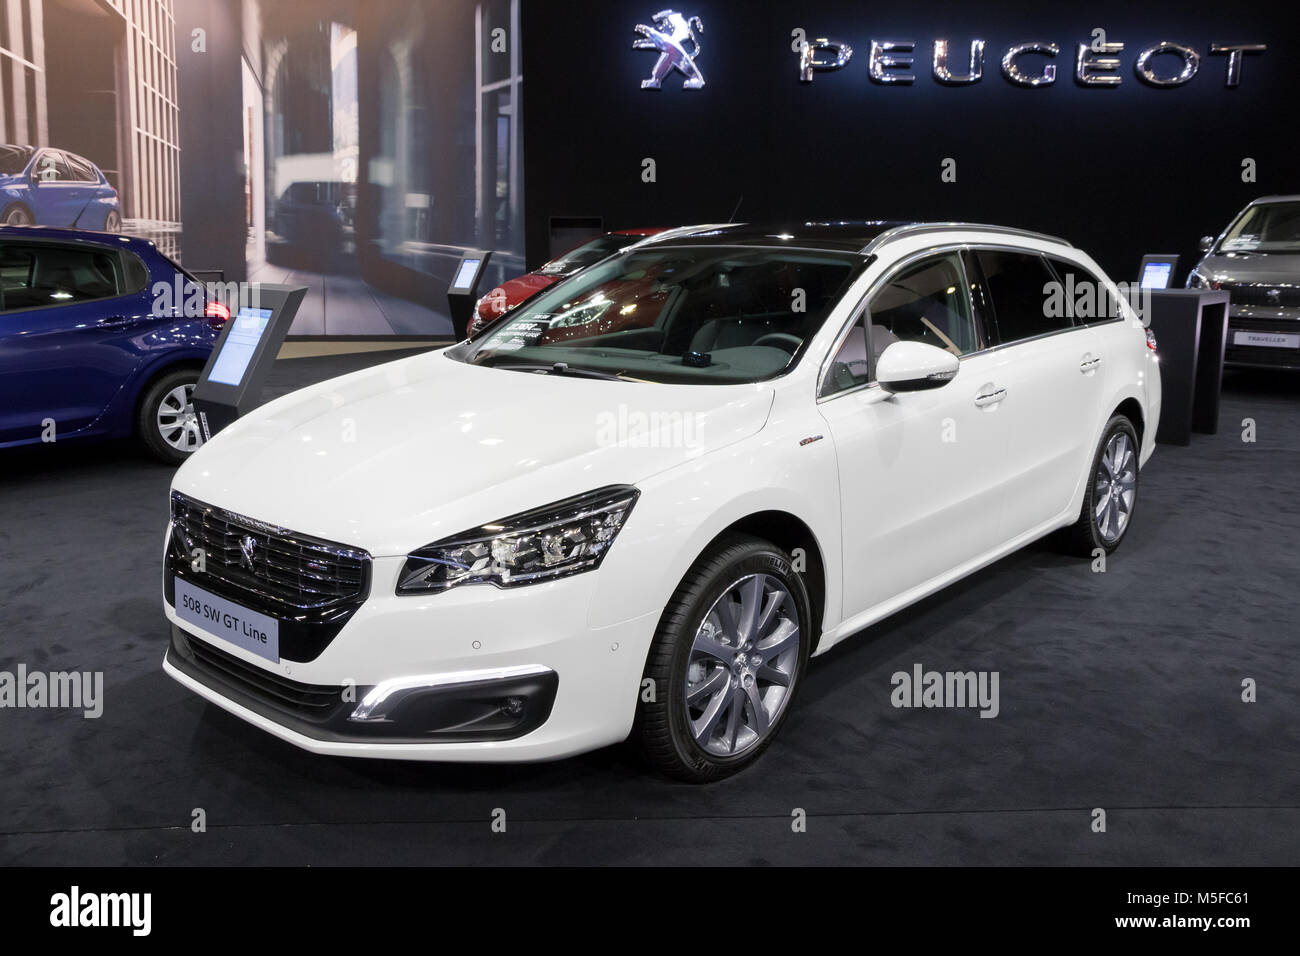 brussels jan 10 2018 peugeot 508 sw gt line station wagon car stock photo 175515817 alamy. Black Bedroom Furniture Sets. Home Design Ideas